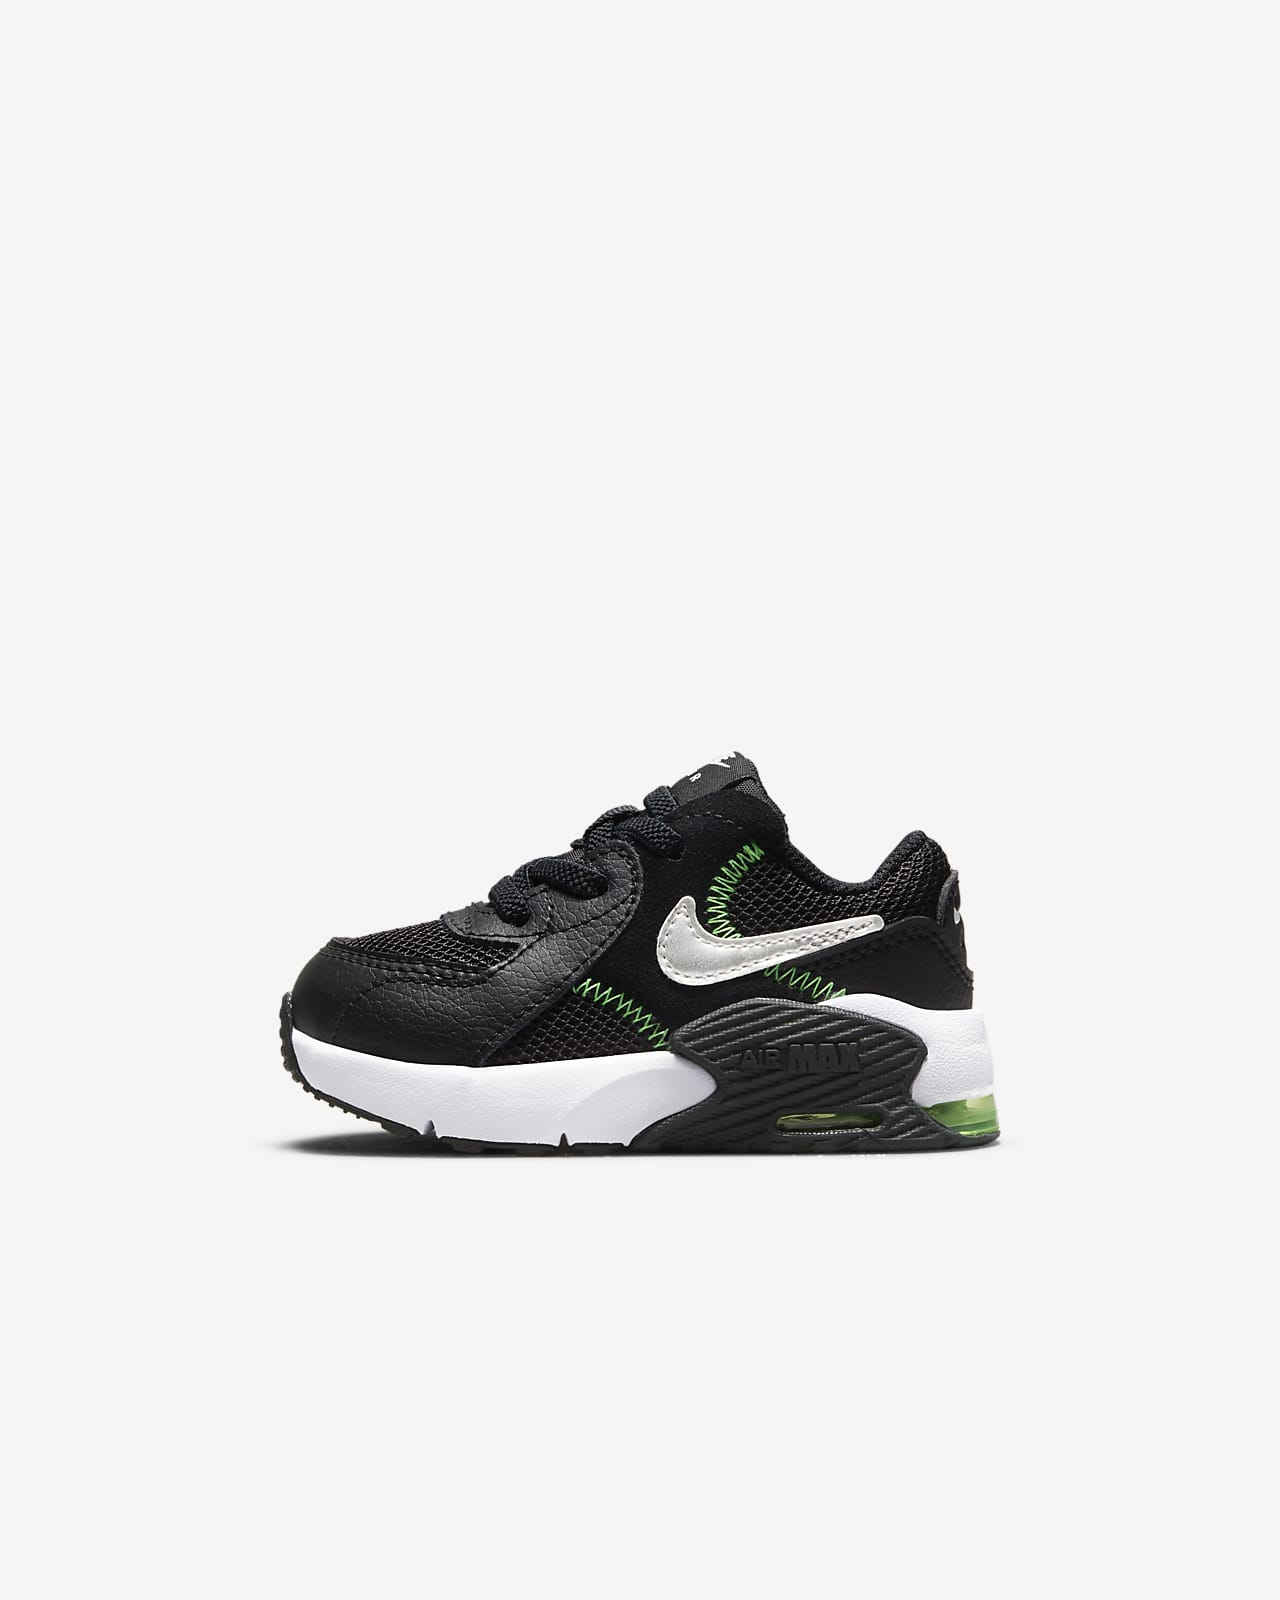 Nike Air Max Excee Baby/Toddler Shoes